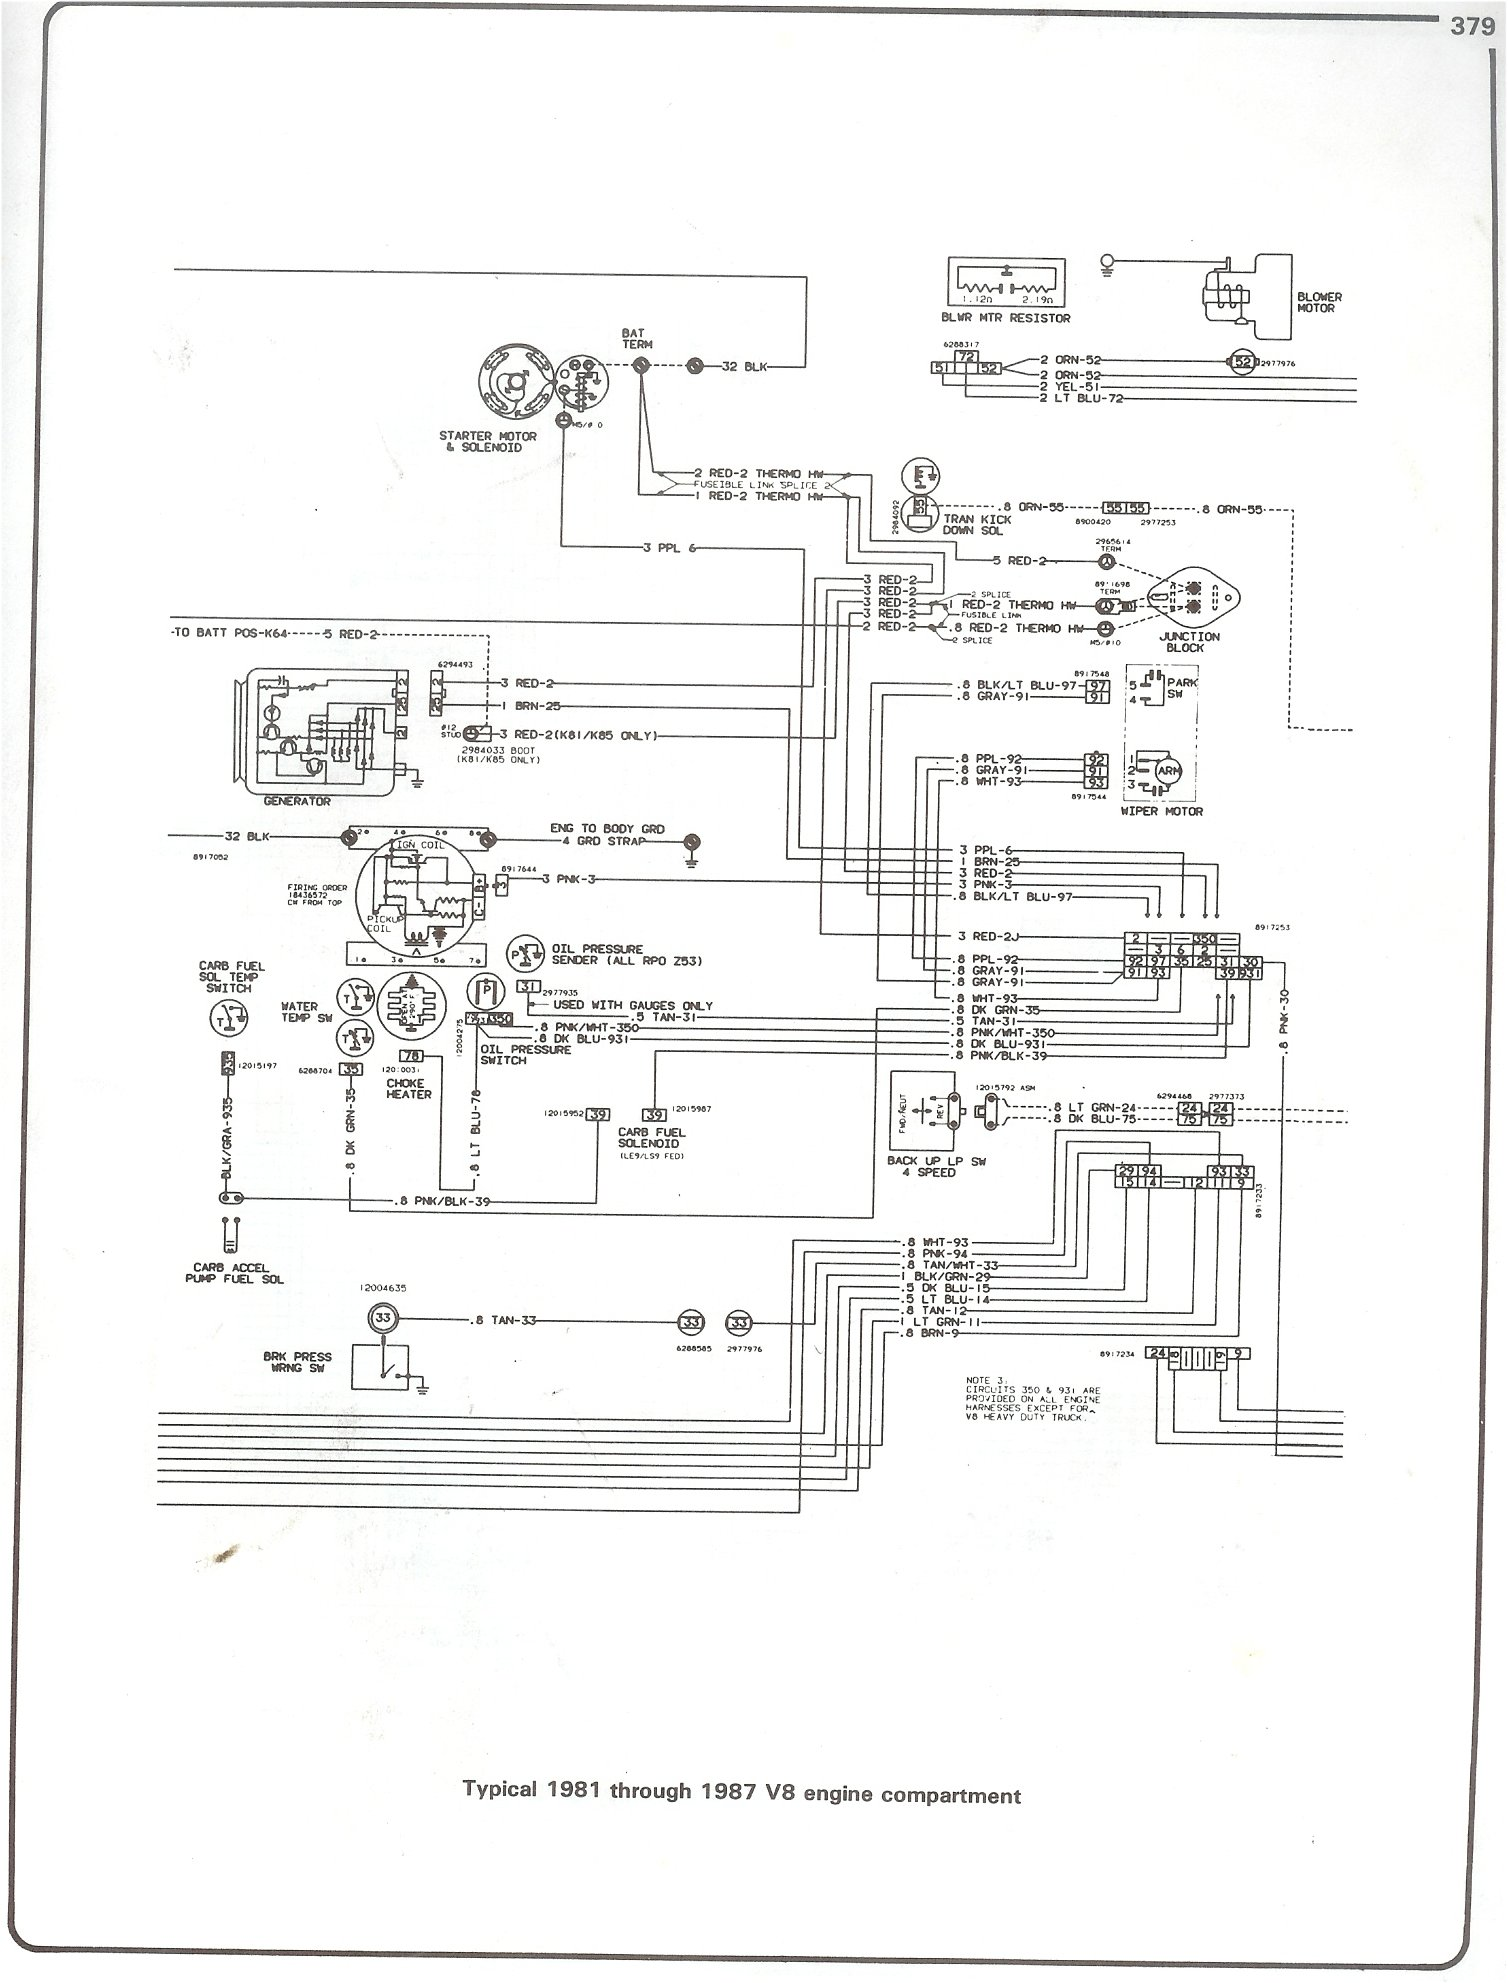 1981 Chevy Silverado Wiring Harness Archive Of Automotive 1980 Toyota Pickup Truck Diagram Just Data Rh Ag Skiphire Co Uk C10